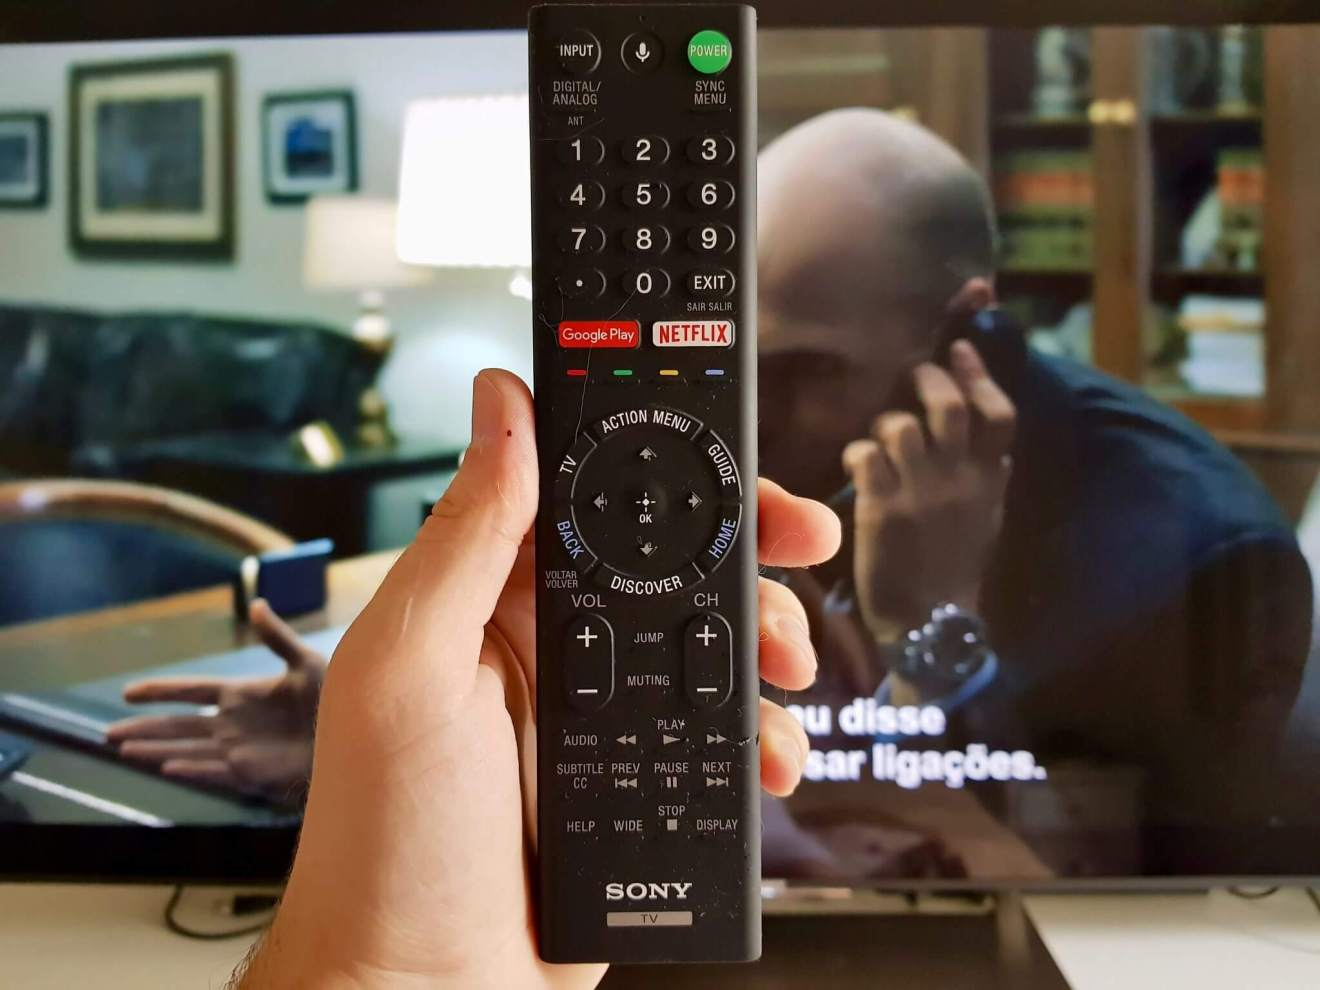 20171020 122322 - Review: Smart TV Sony 4K XBR-65X905E (Android TV)